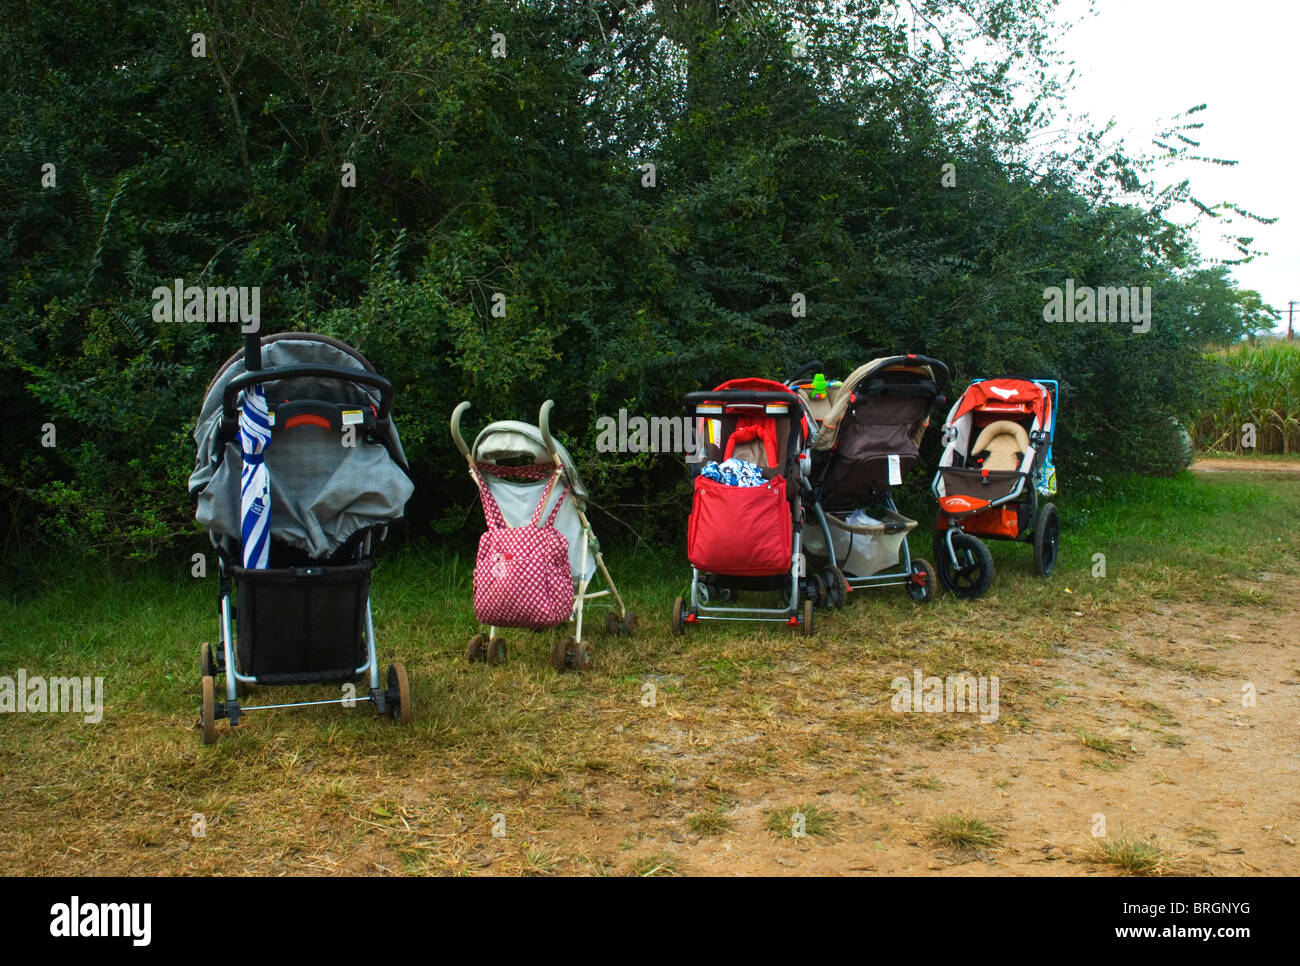 Empty baby carriages outside - Stock Image